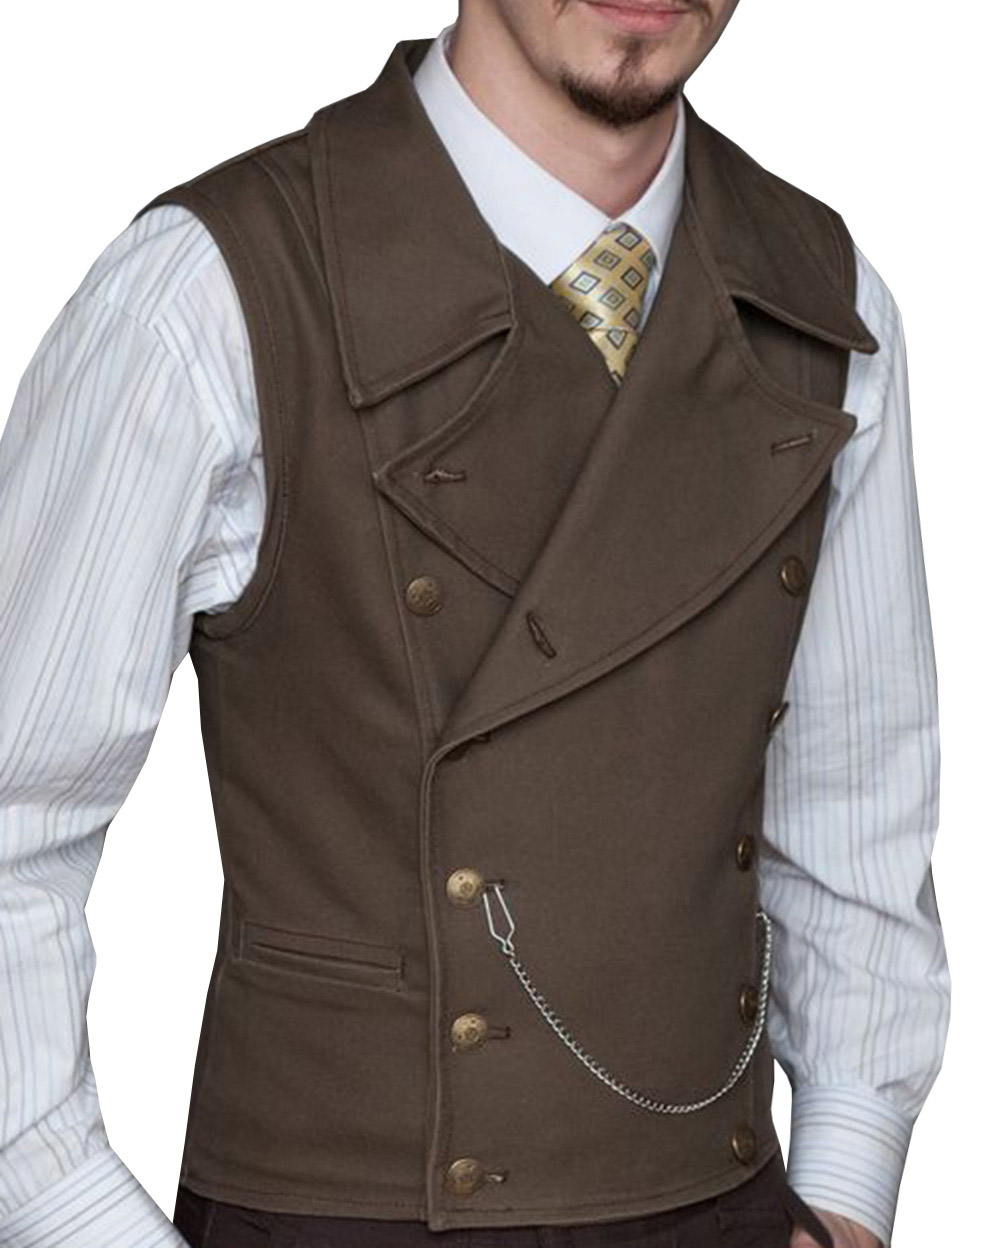 Mens Suit Vest Lapel Neck Wool Brown Waistcoat Casual Formal Double-breasted Business Slim Fit Vest Groomman For Wedding